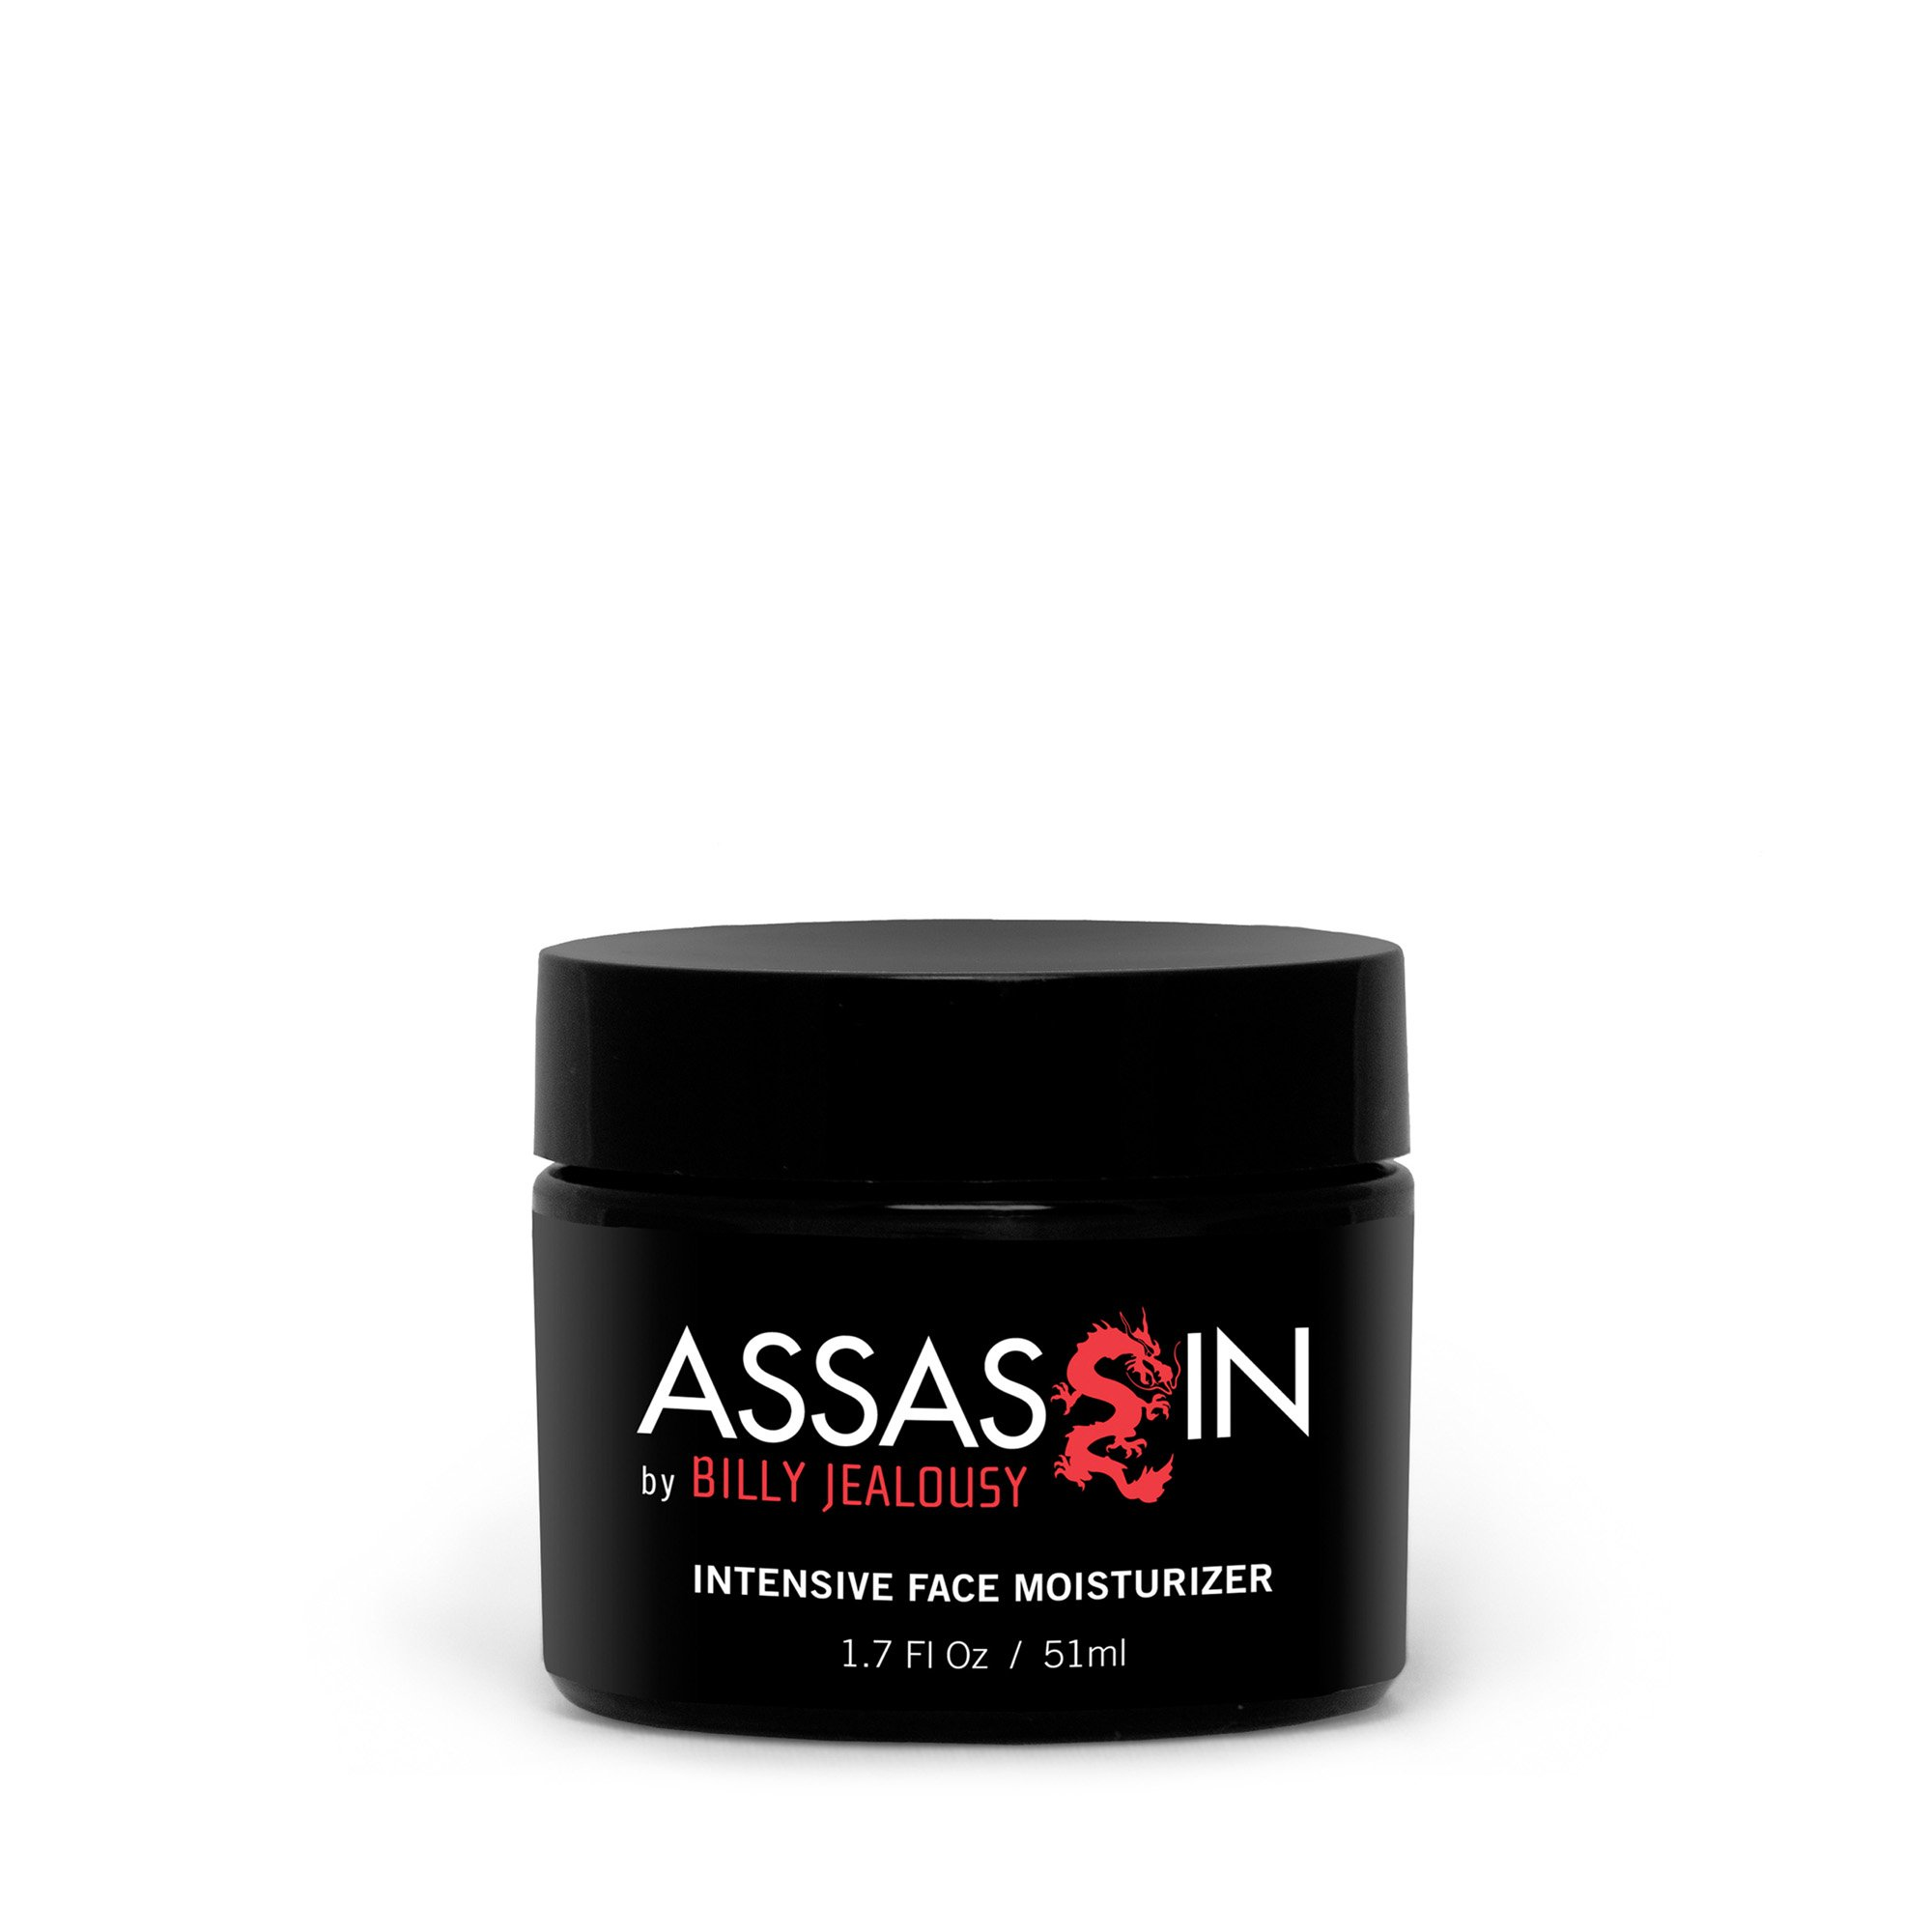 Billy Jealousy Assassin Intensive Face Moisturizer, 1.7 fl. oz.